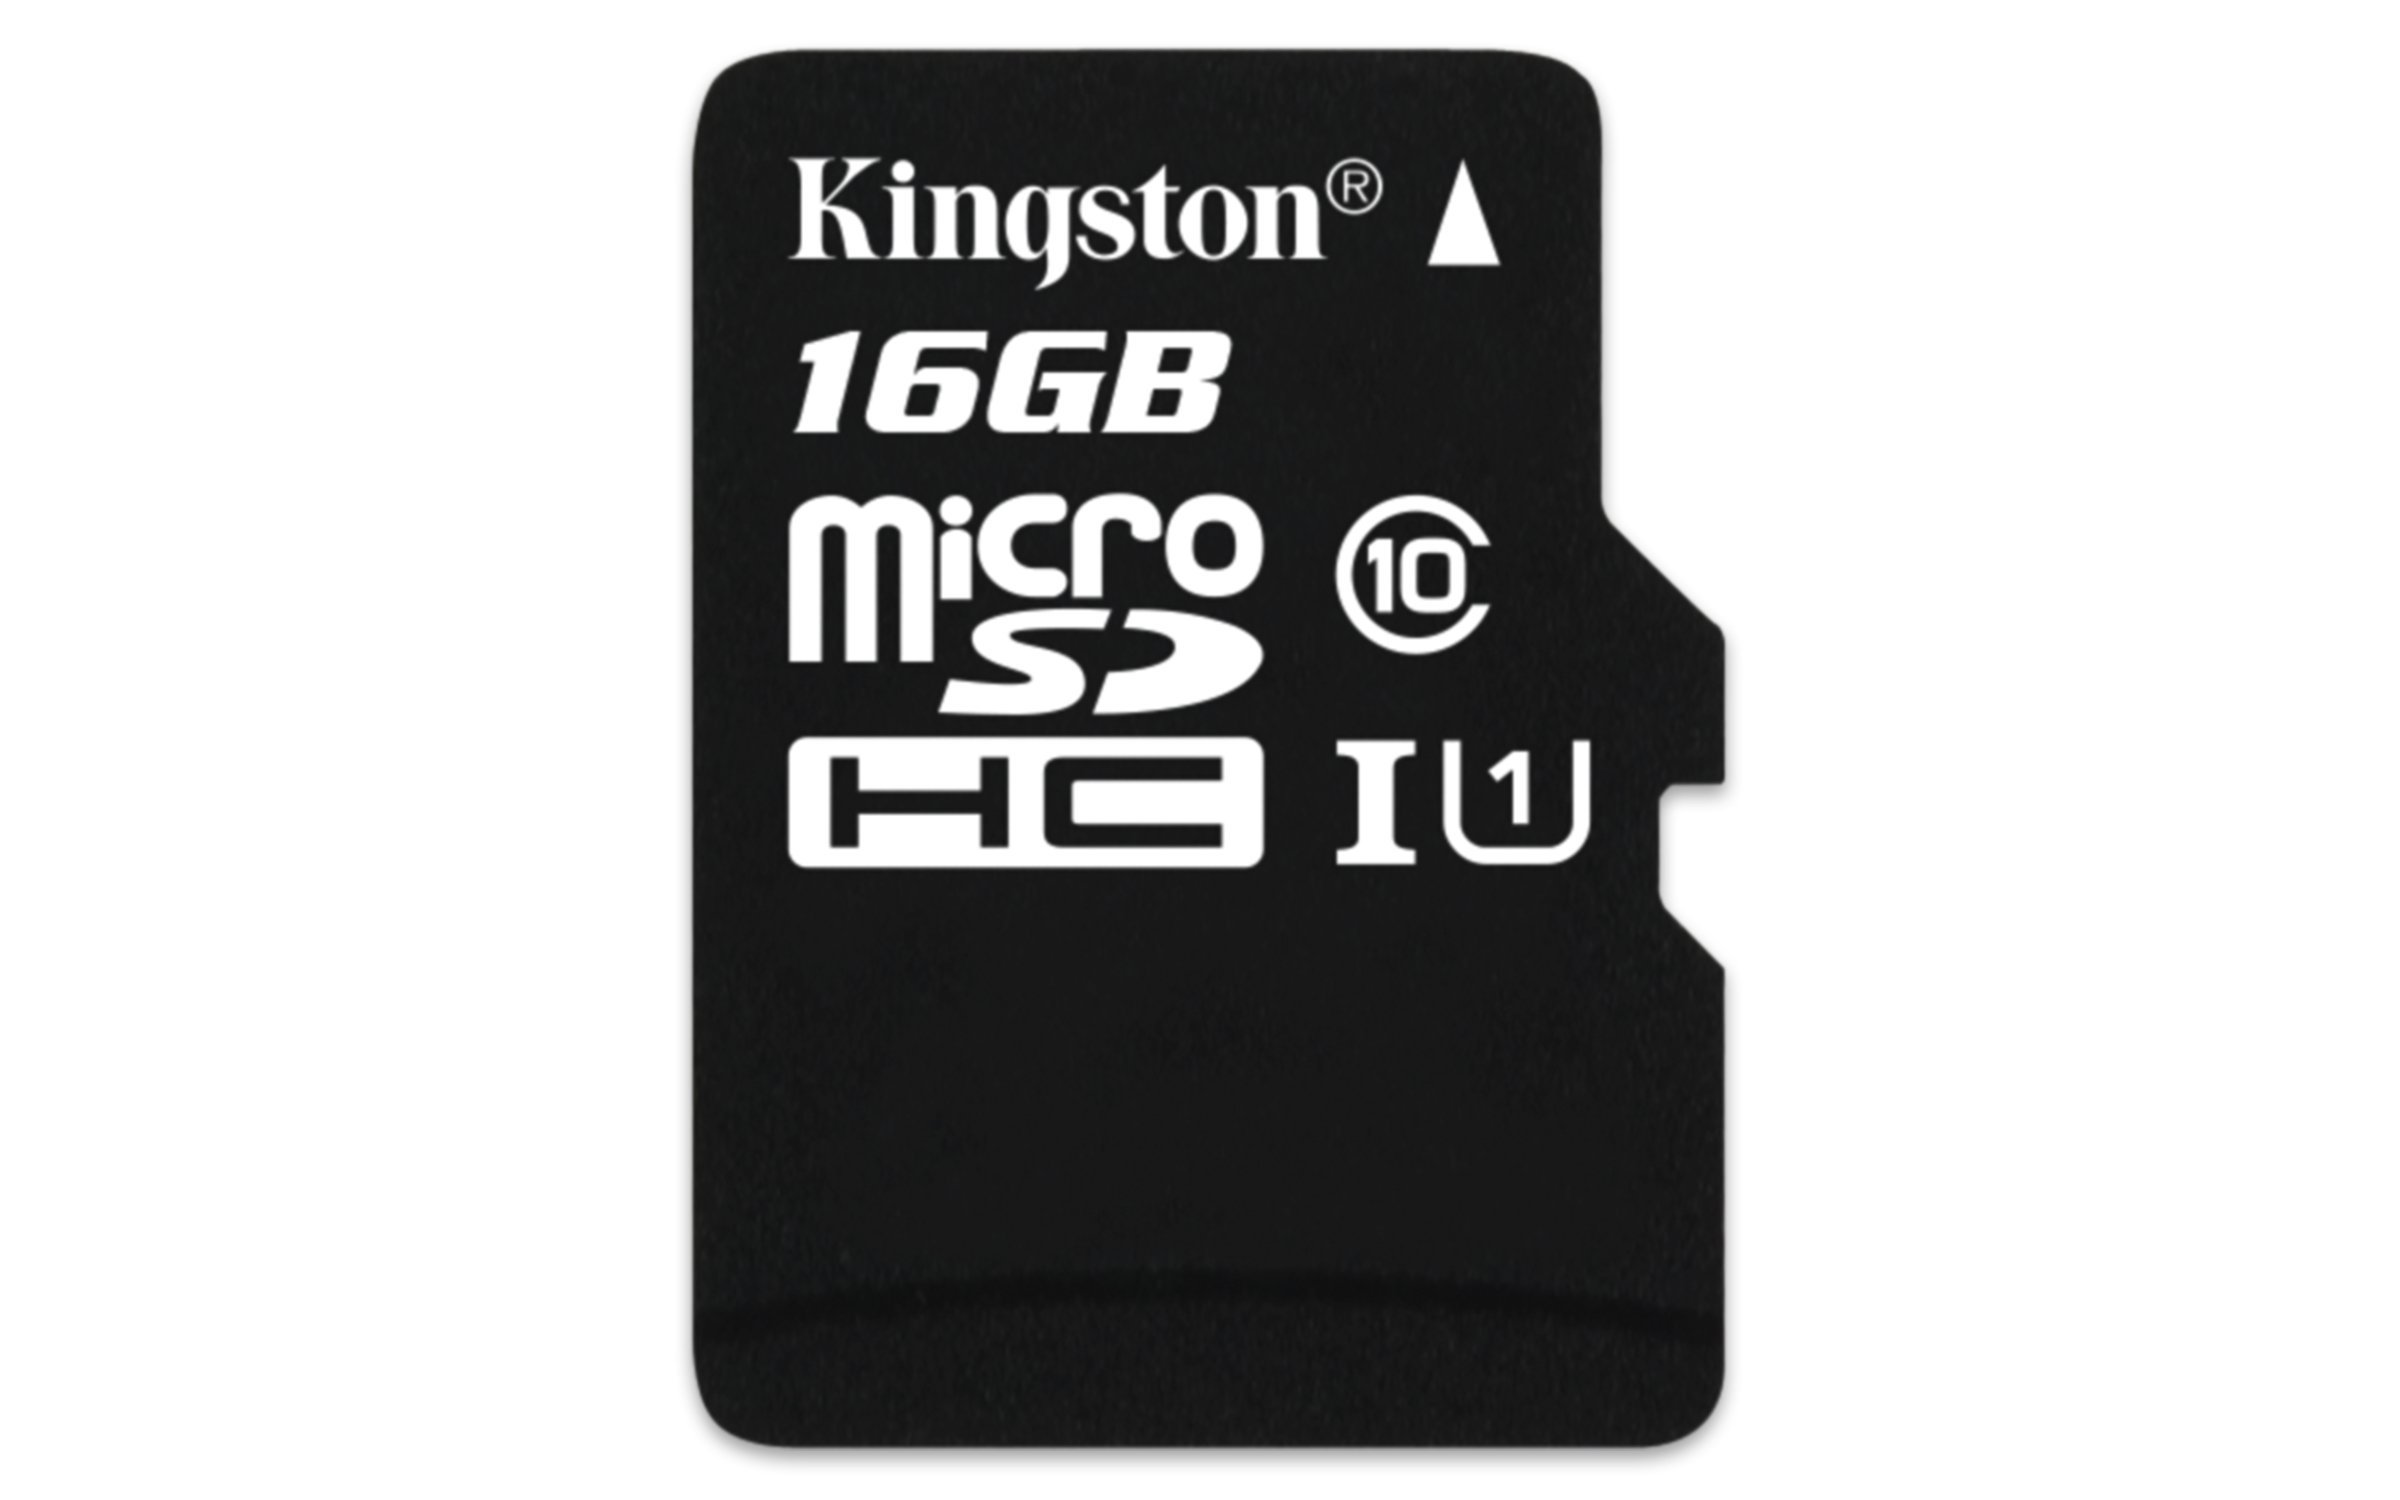 Kingston Digital 16GB Micro SDHC UHS-I Class 10...